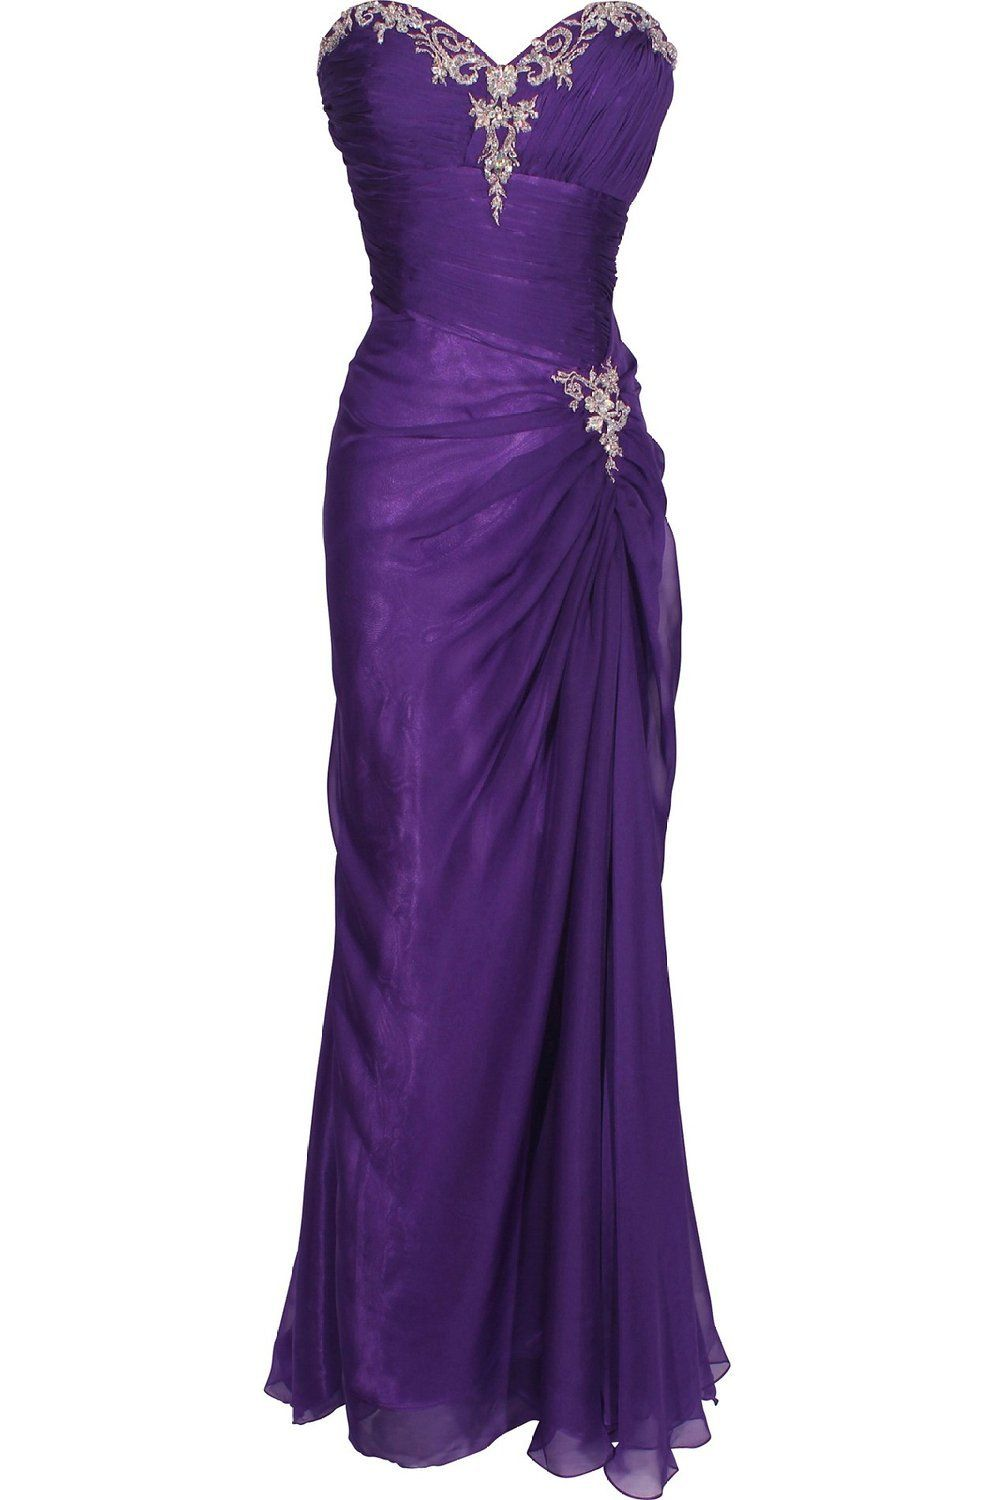 Mic Dresses Women's Strapless Long Evening Gown Ball Dresses at Amazon Women's Clothing store: